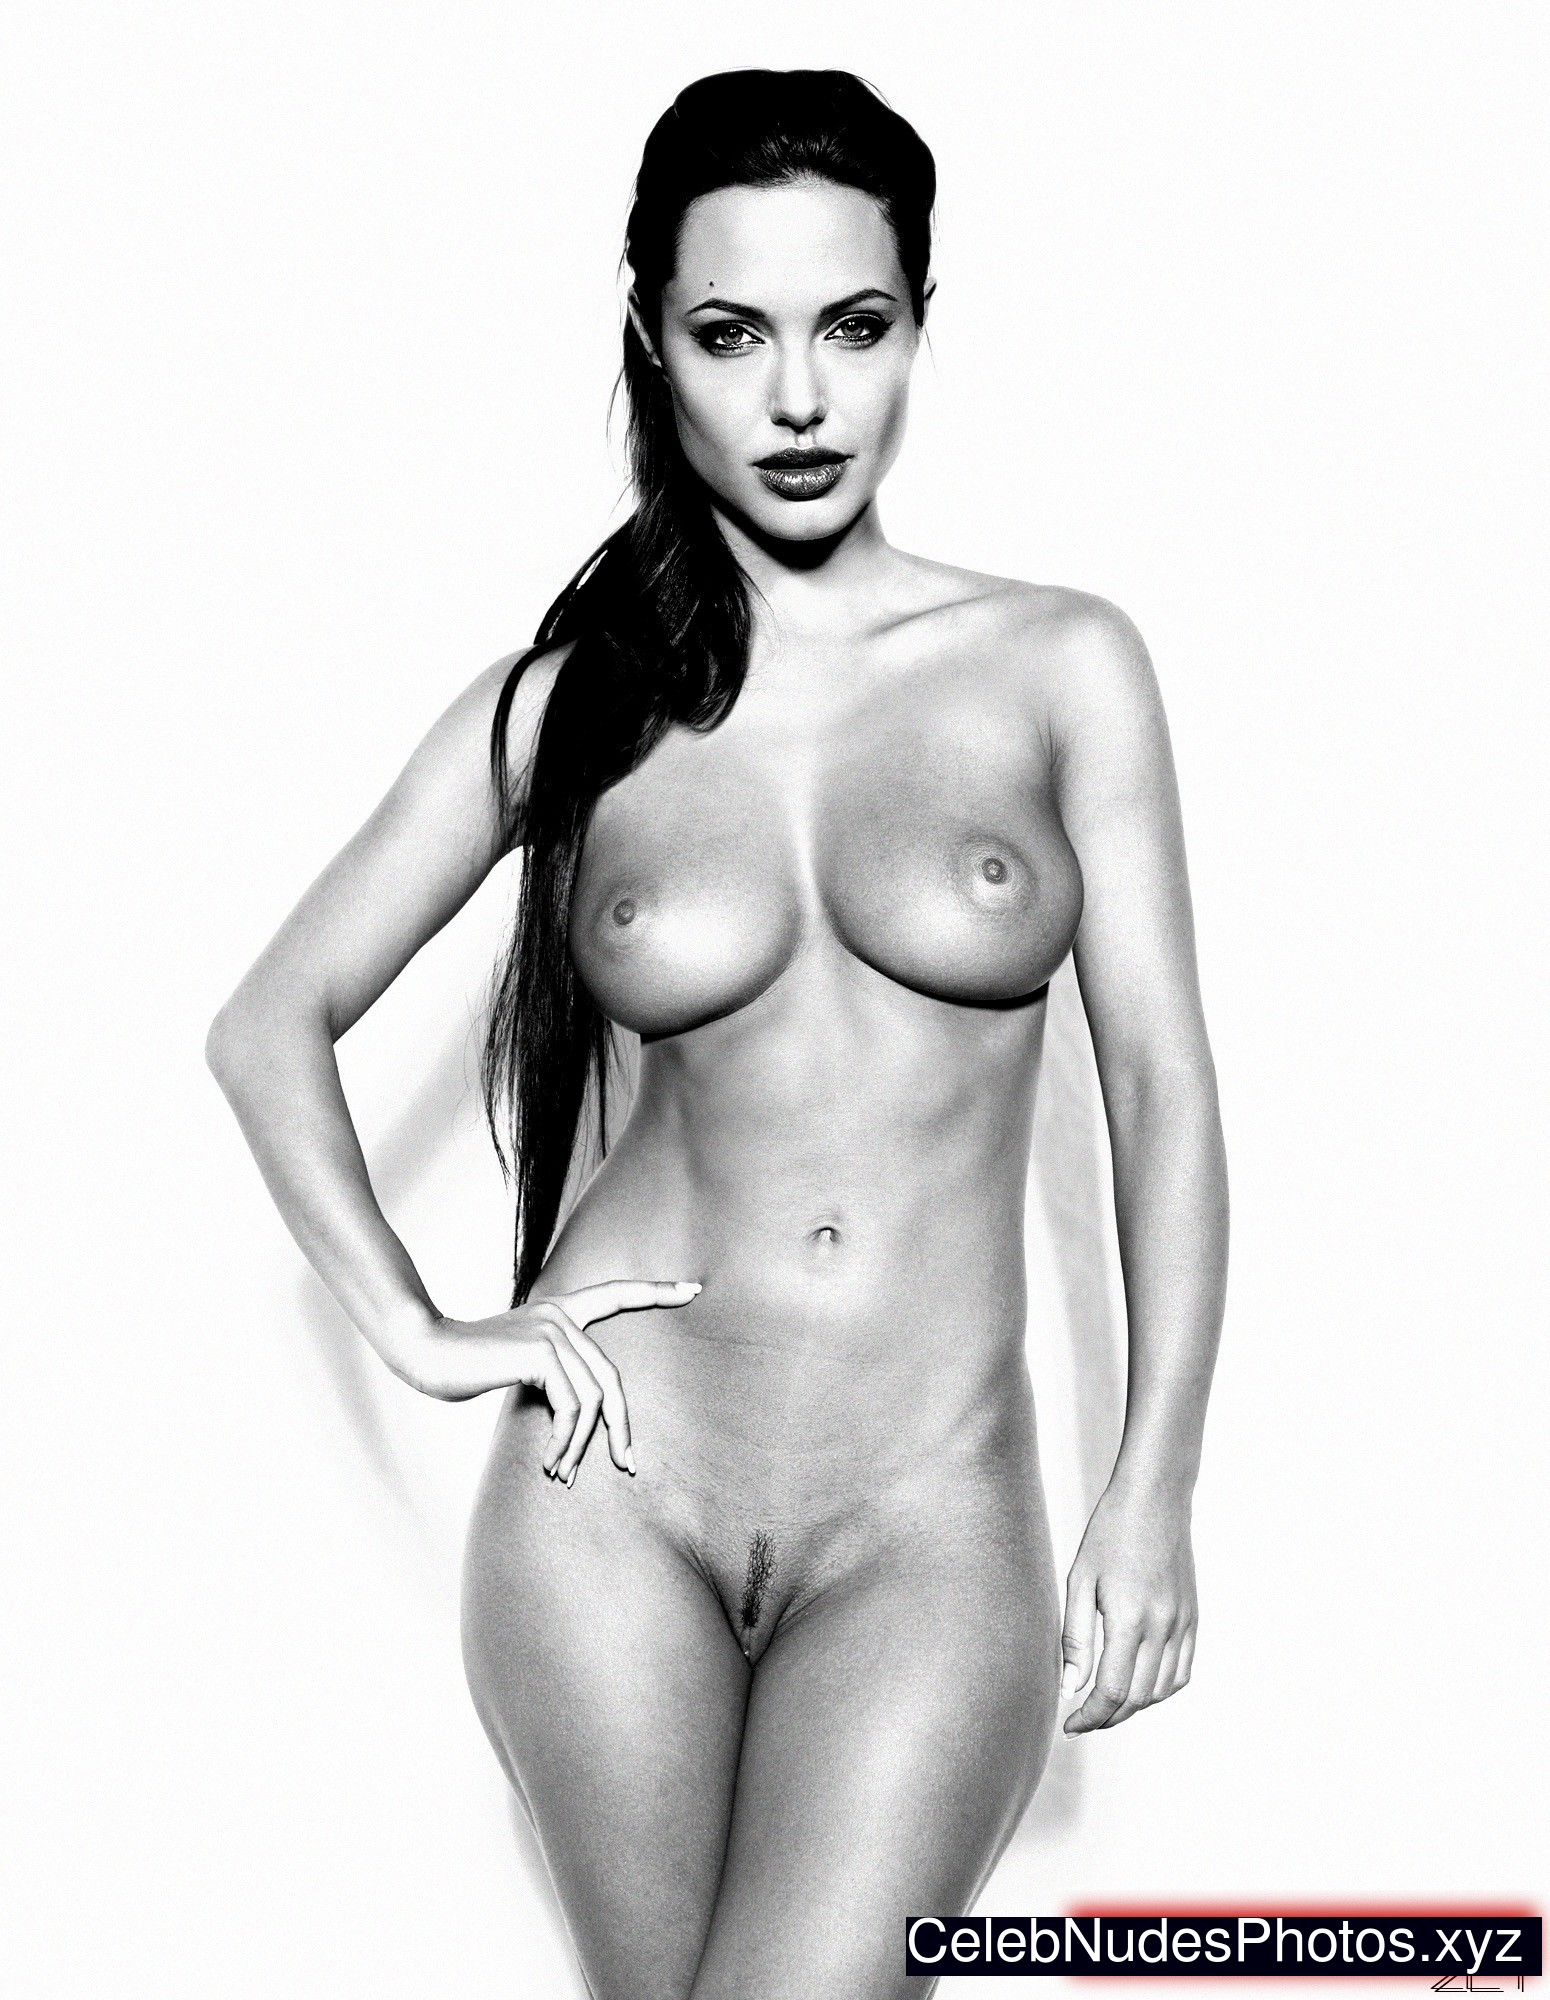 from Quincy anjelina jolie nude images